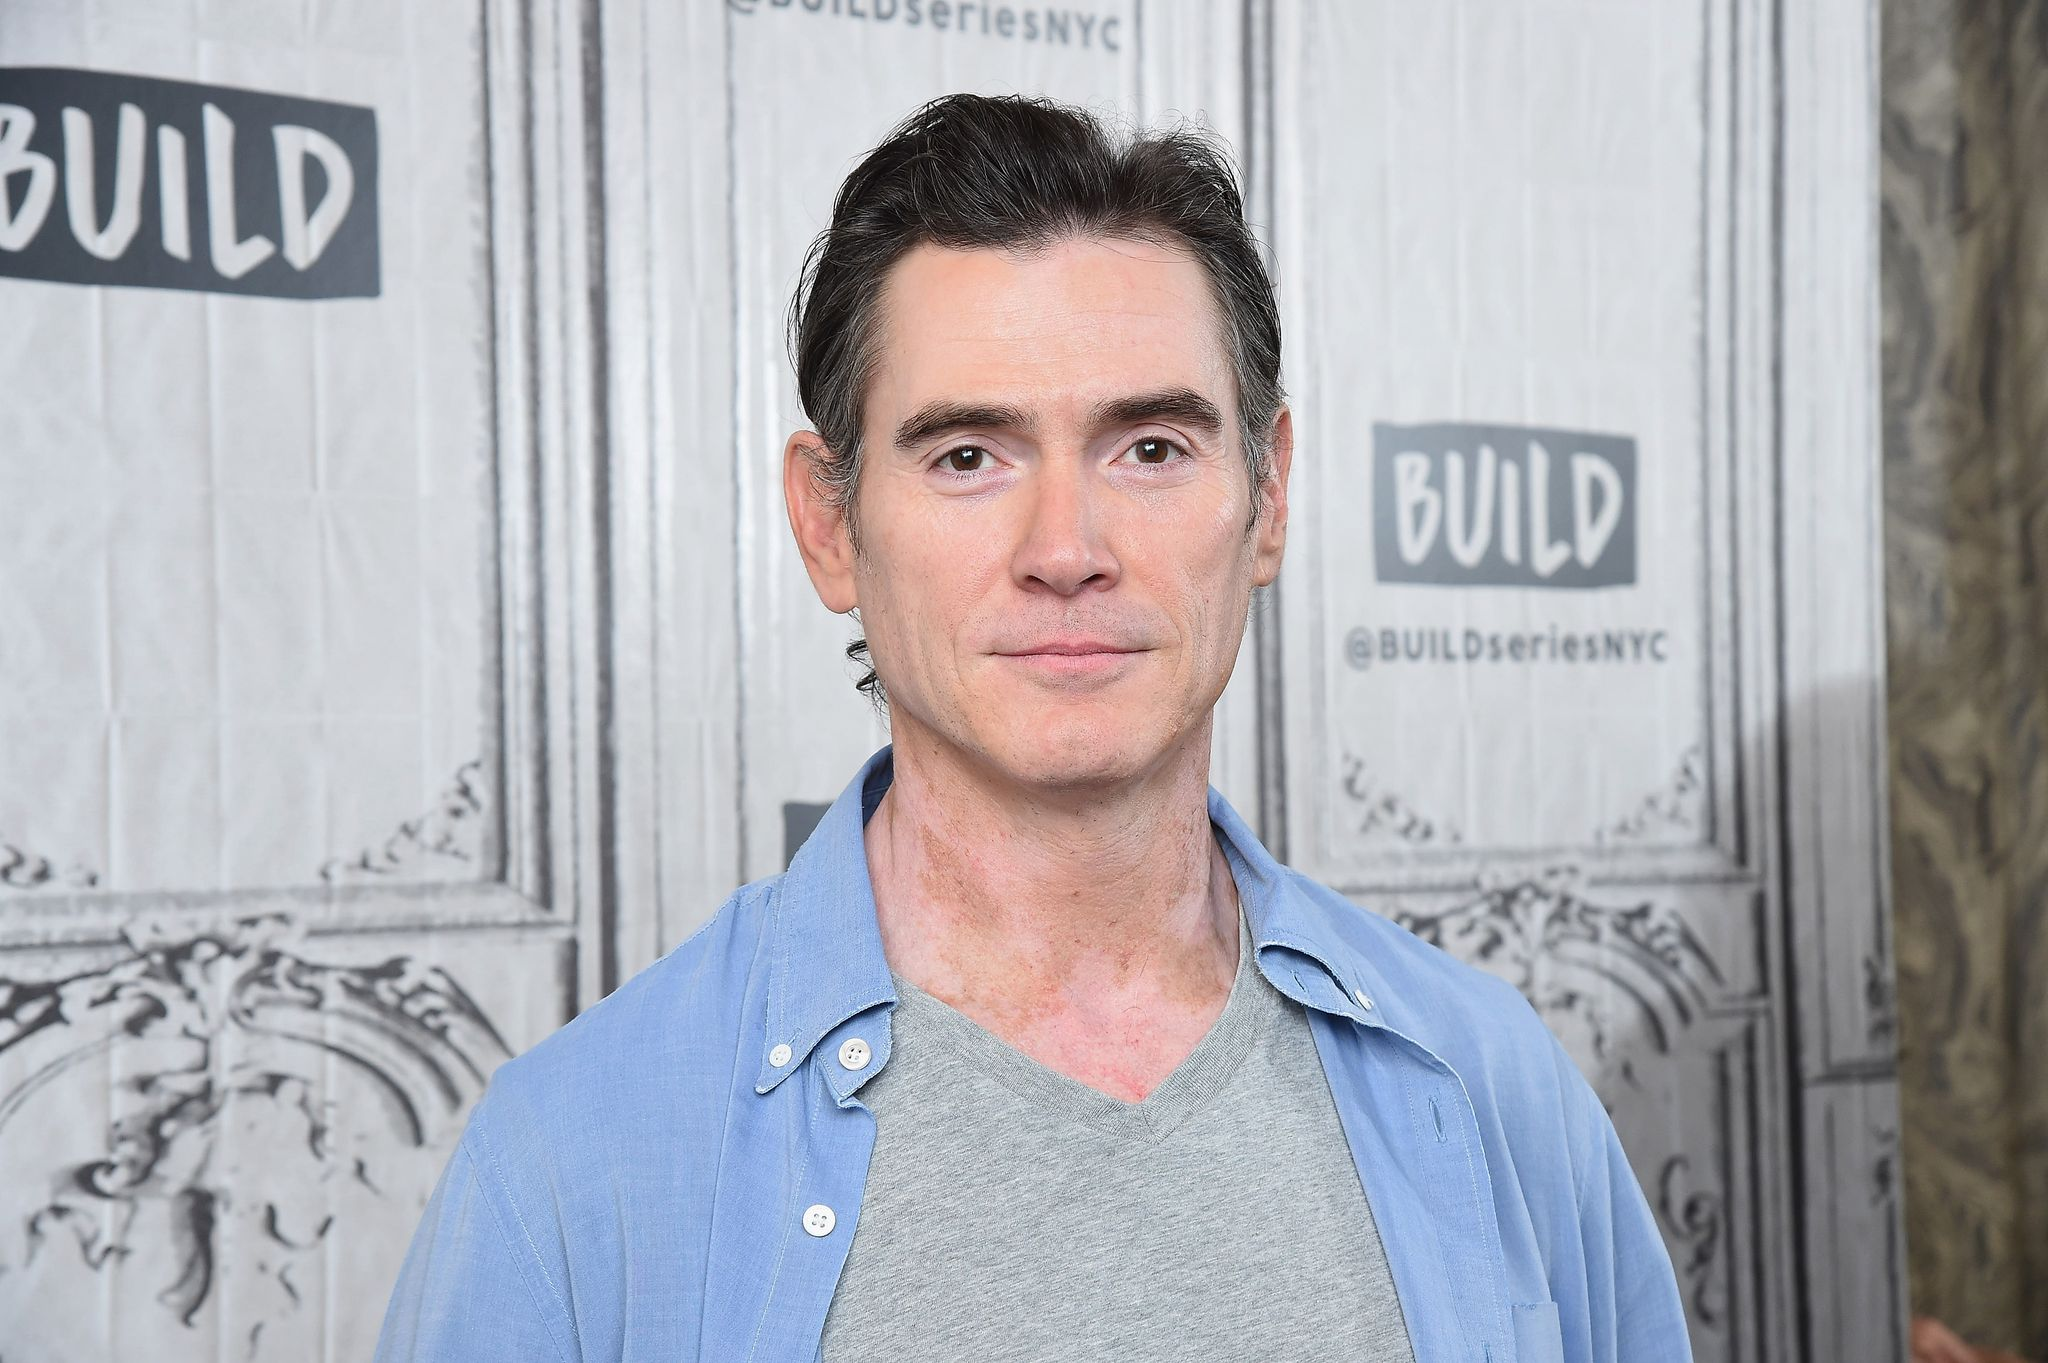 Billy Crudup at the Build Studio in 2019 in New York City | Source: Getty Images